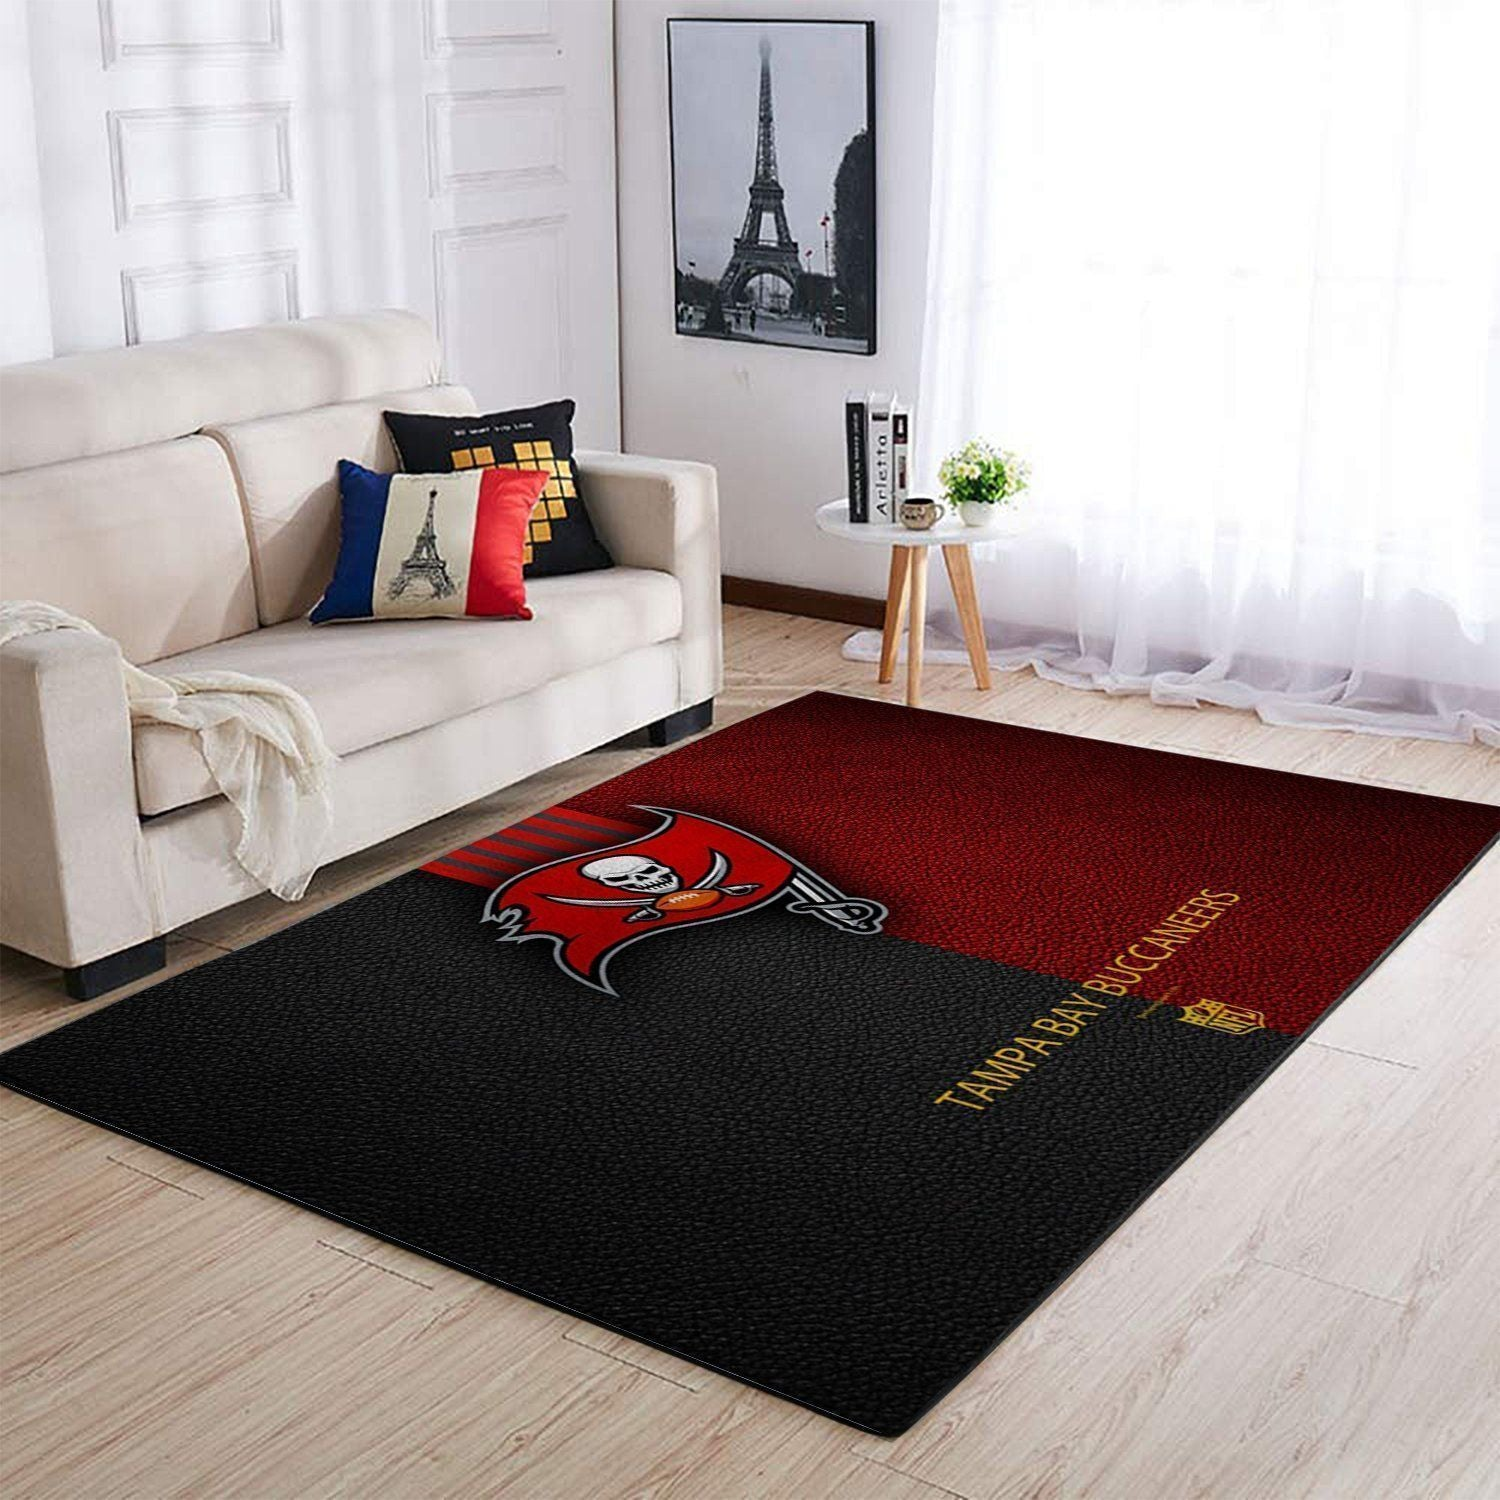 Tampa Bay Buccaneers Area Rugs NFL Football Living Room Carpet Team Logo Custom Floor Home Decor 1910072